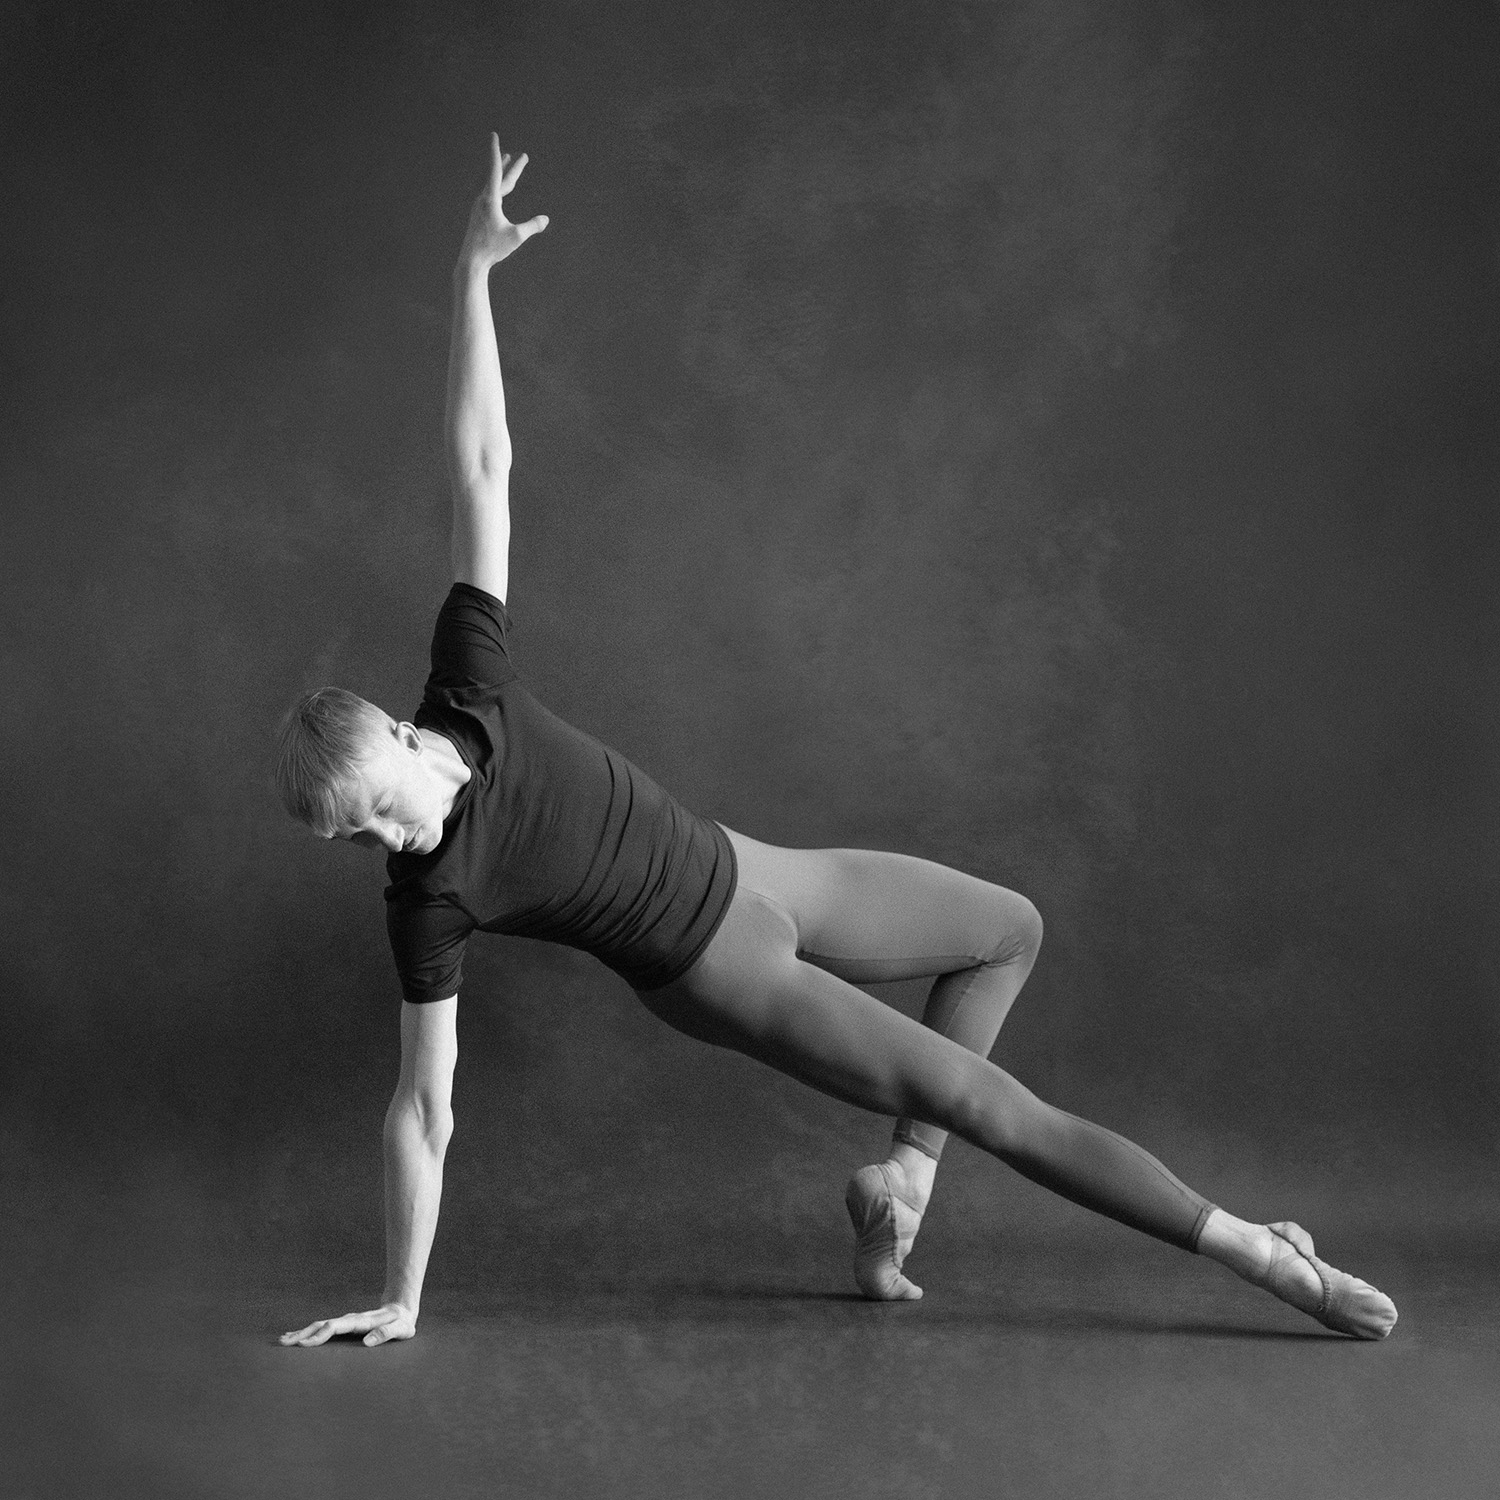 Black and White Ballet Photography